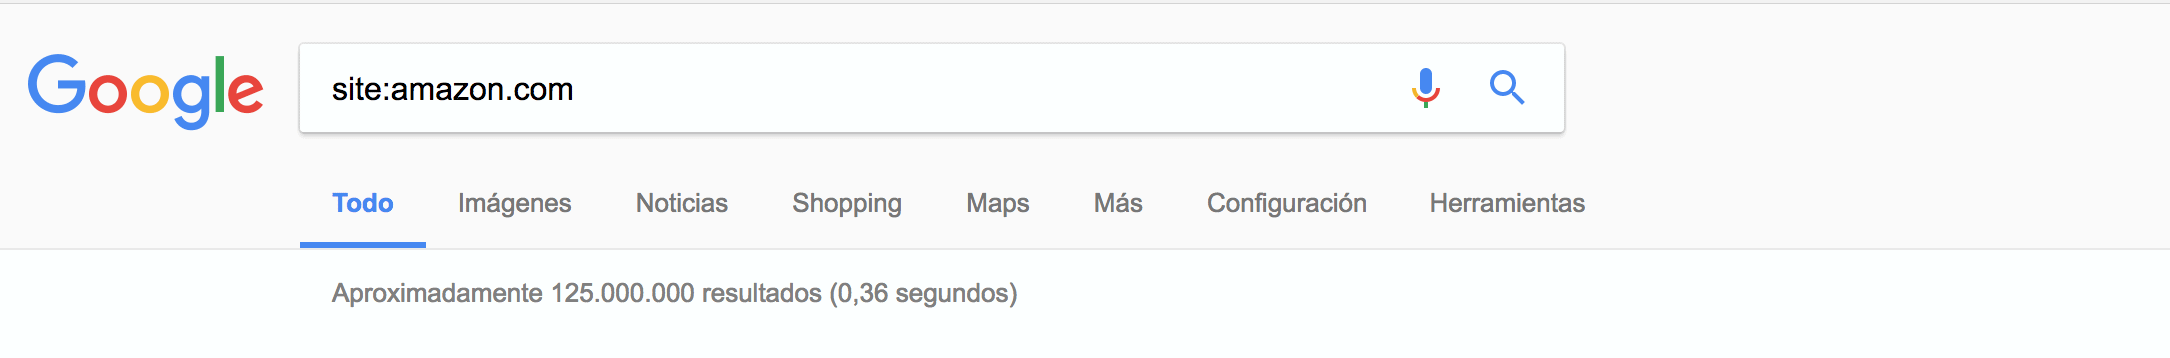 Resultados de Amazon en Google